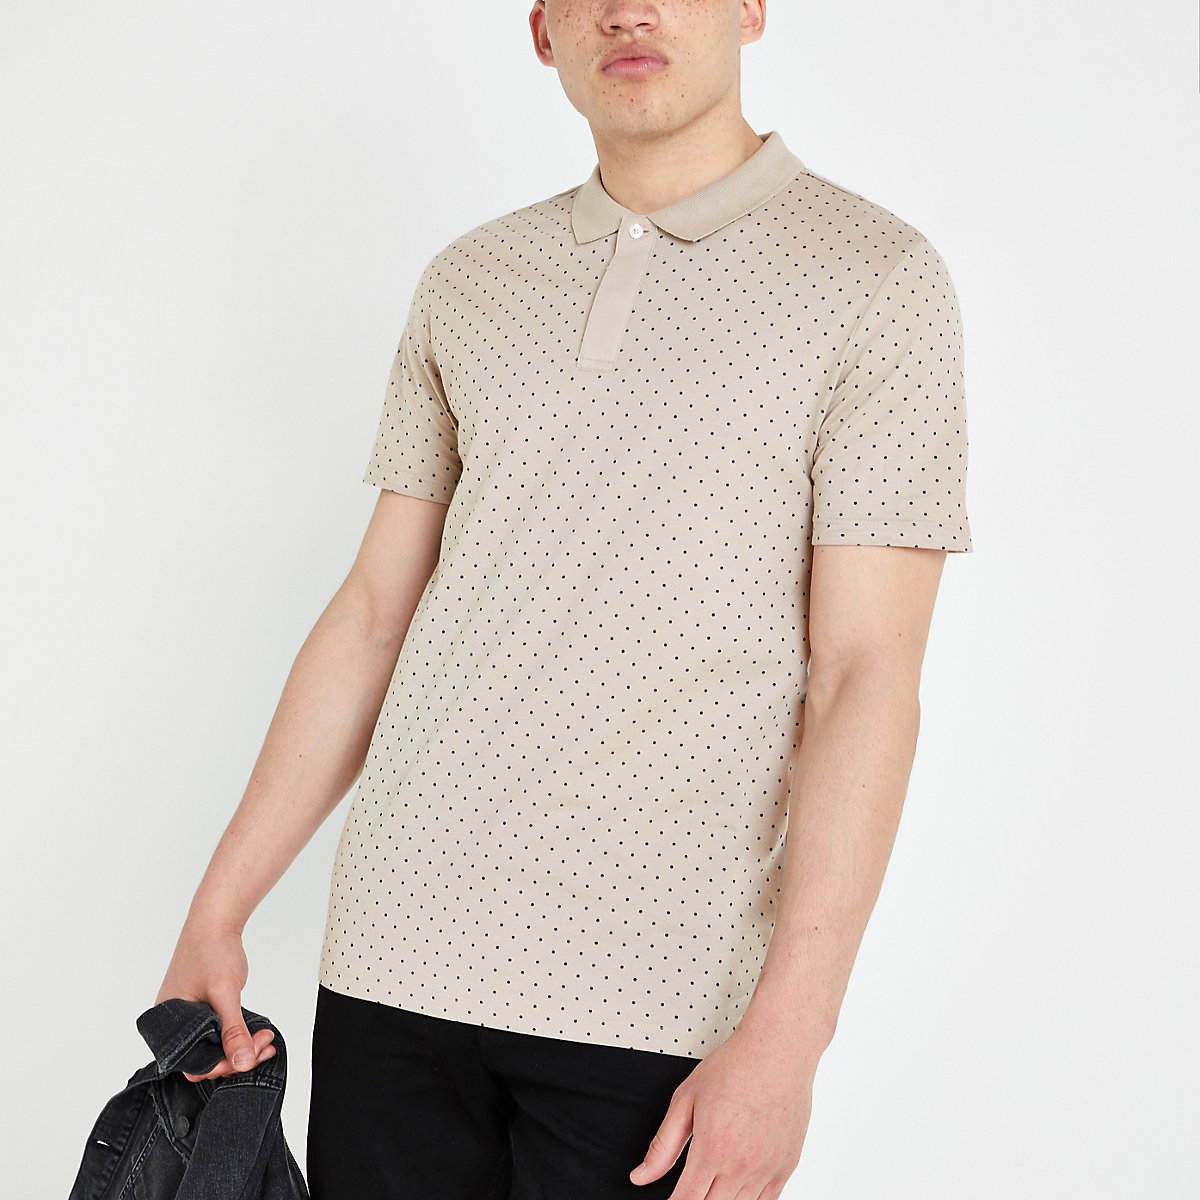 Jack and Jones stone spot polo shirt